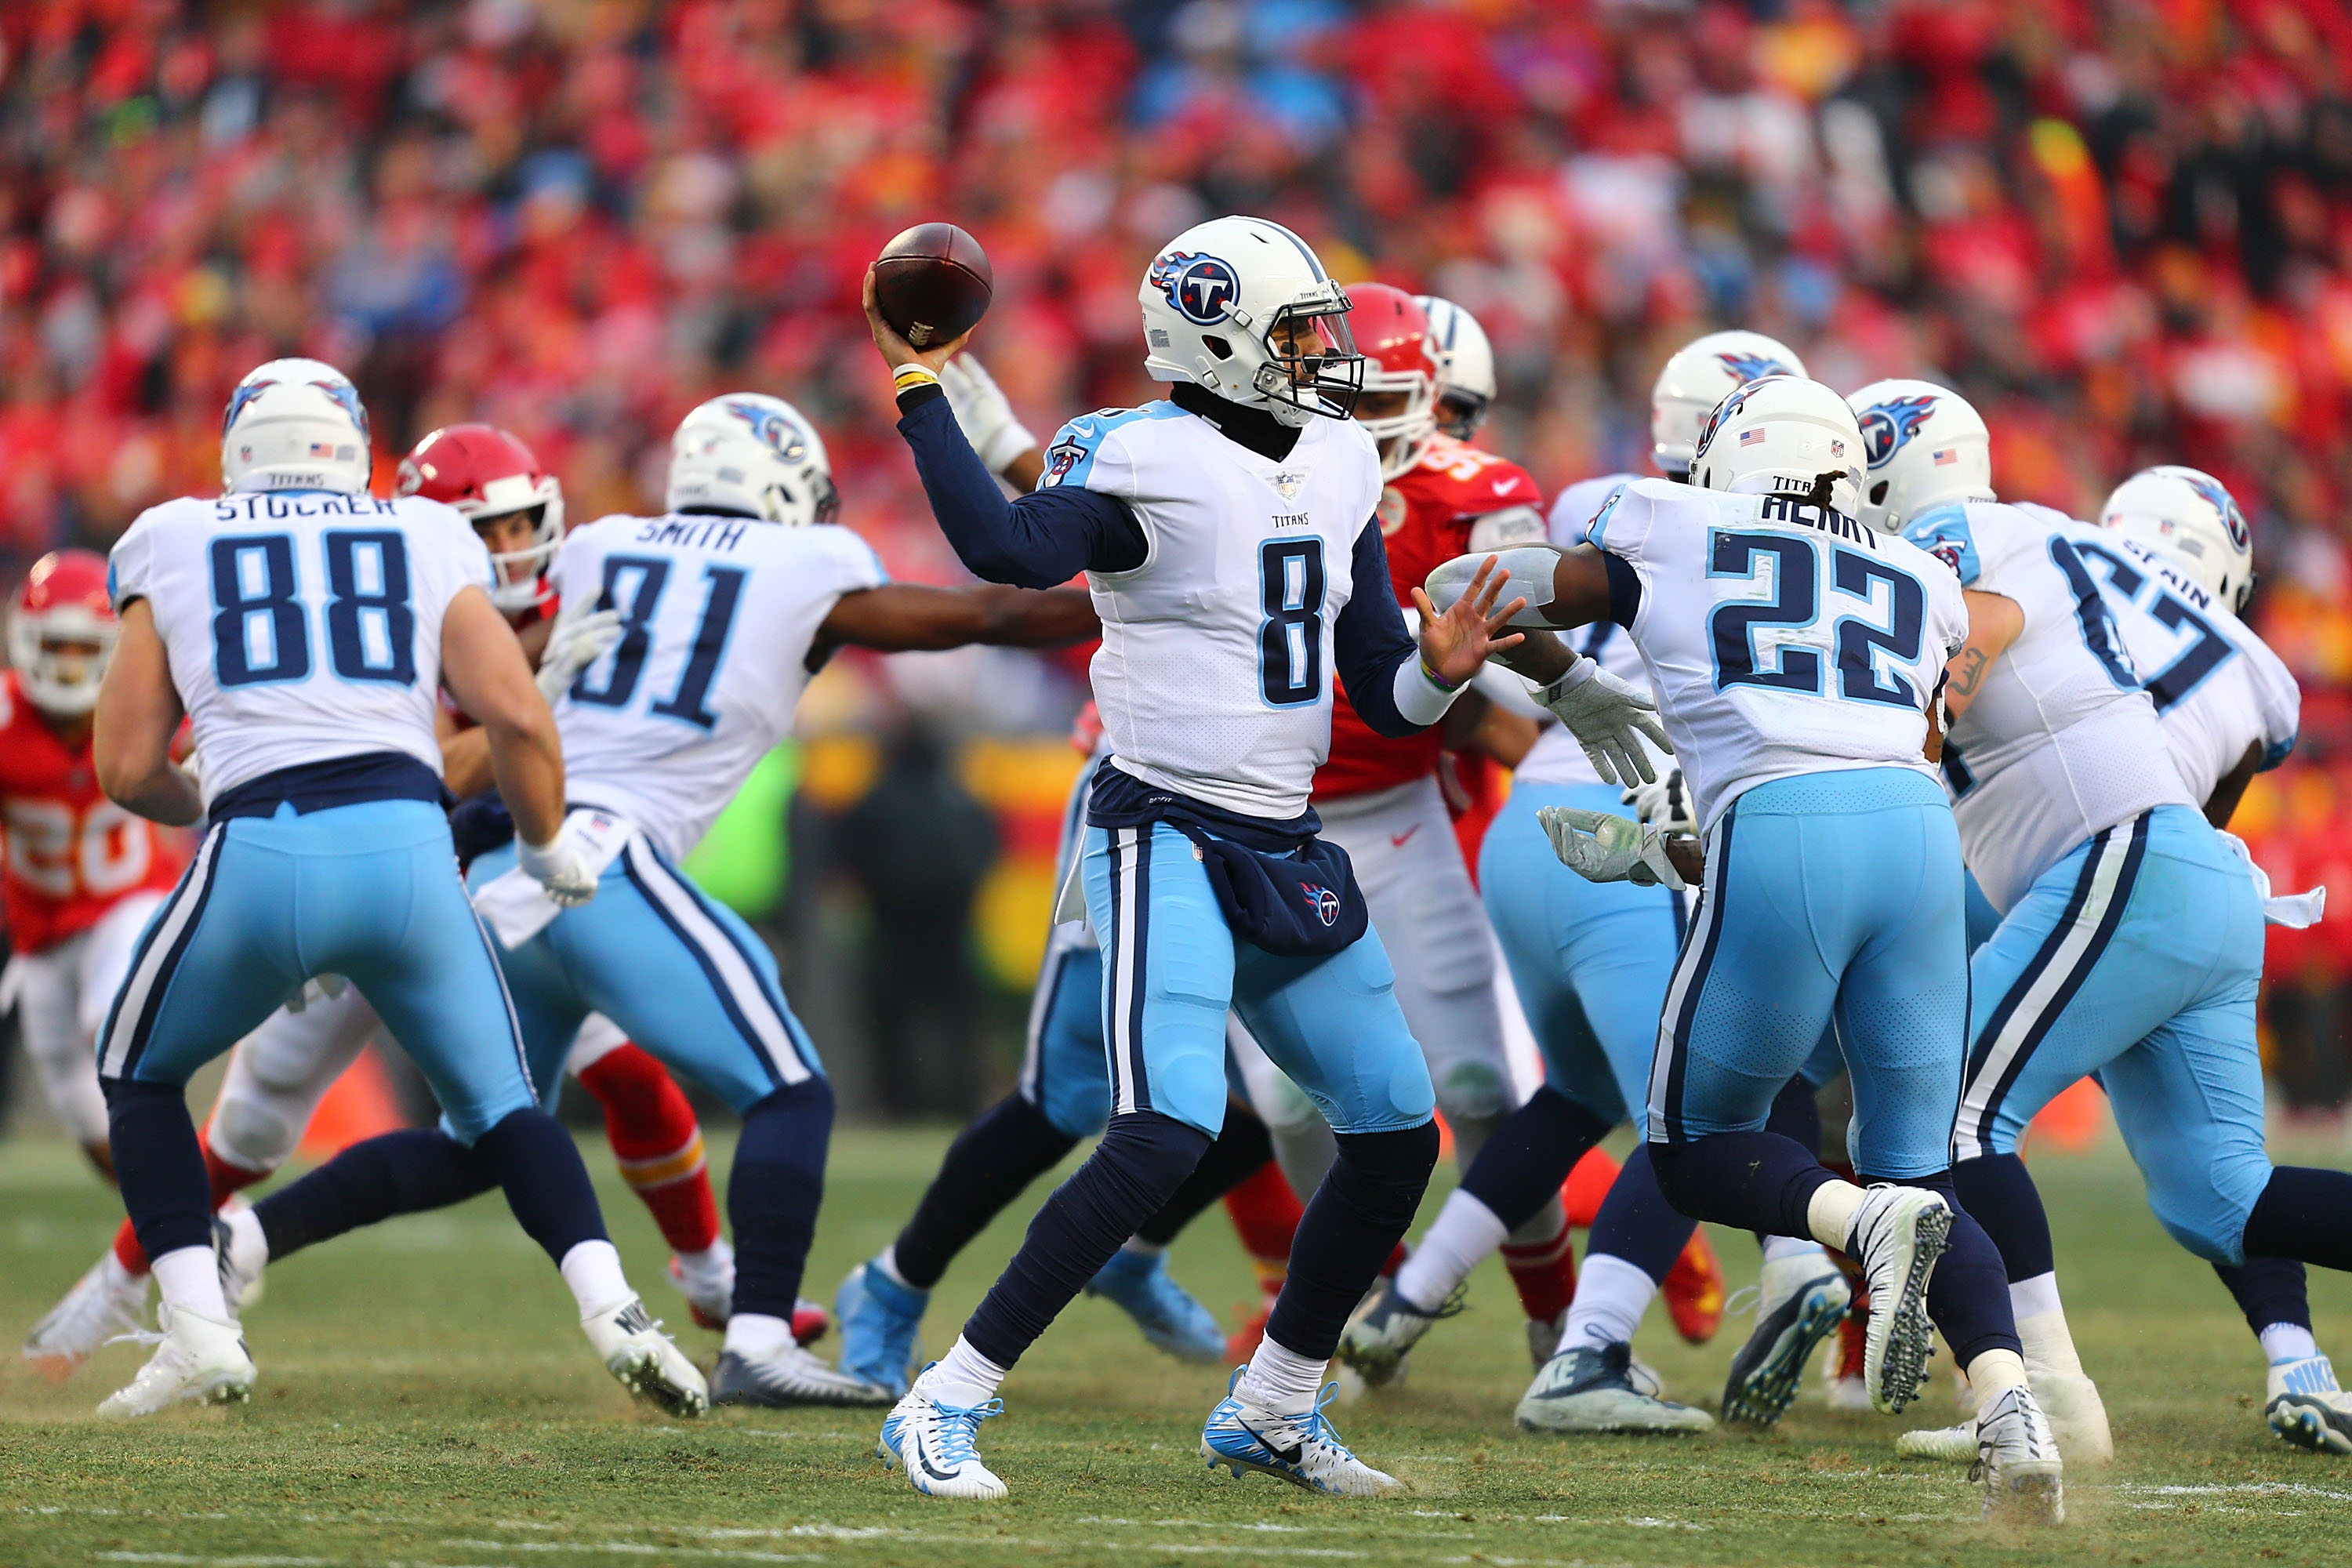 5 Things To Know About The Tennessee Titans Win Against Chiefs